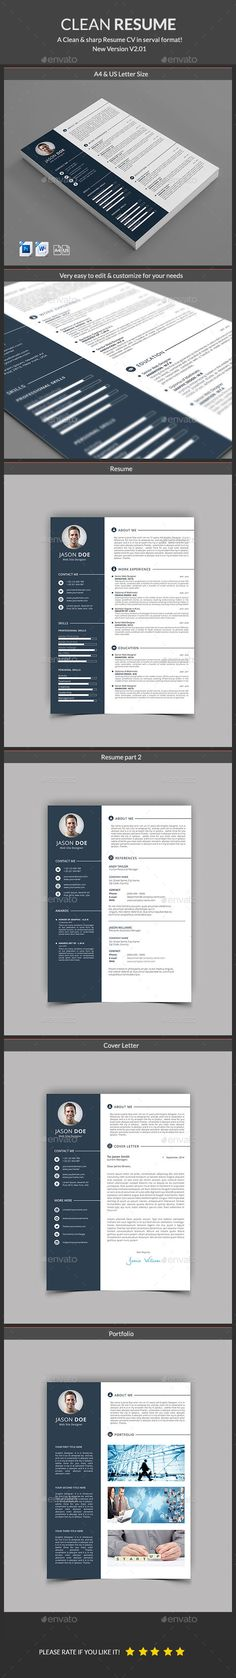 Simple Best Resume Example 10 Interesting \ Simple Resume Examples - edi analyst sample resume